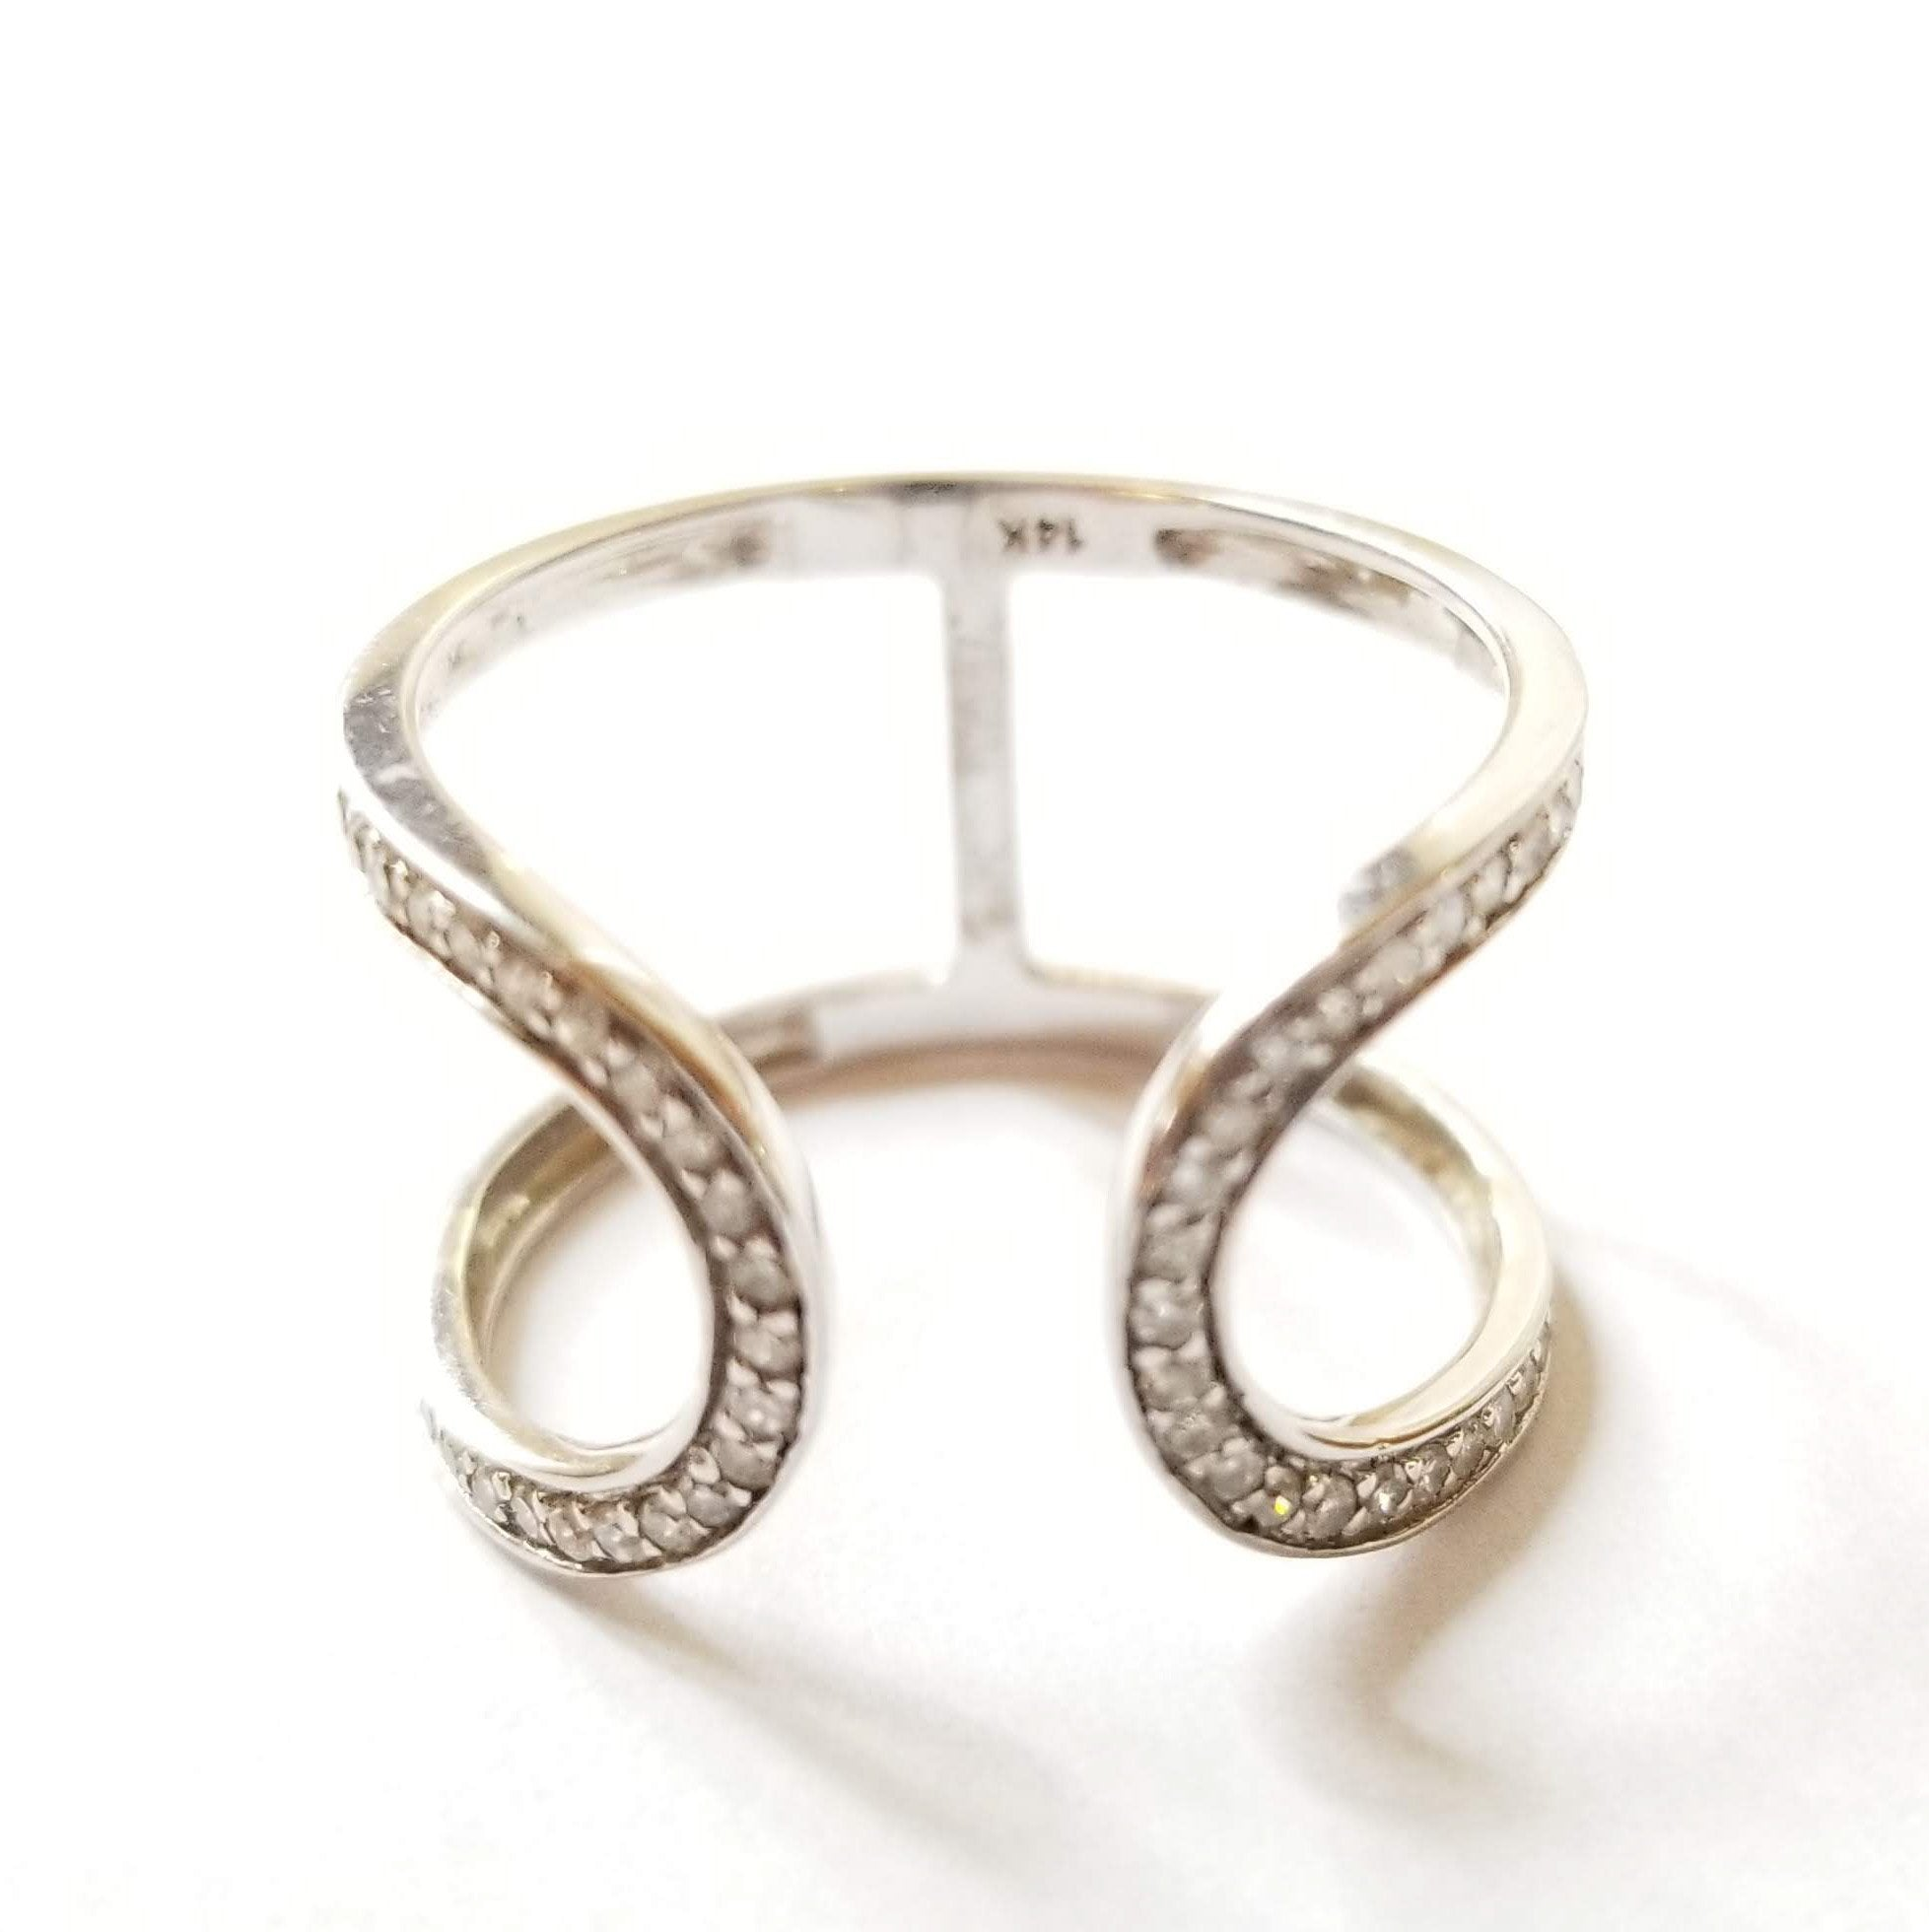 Open Loop Diamond Ring - Alef Bet Jewelry by Paula